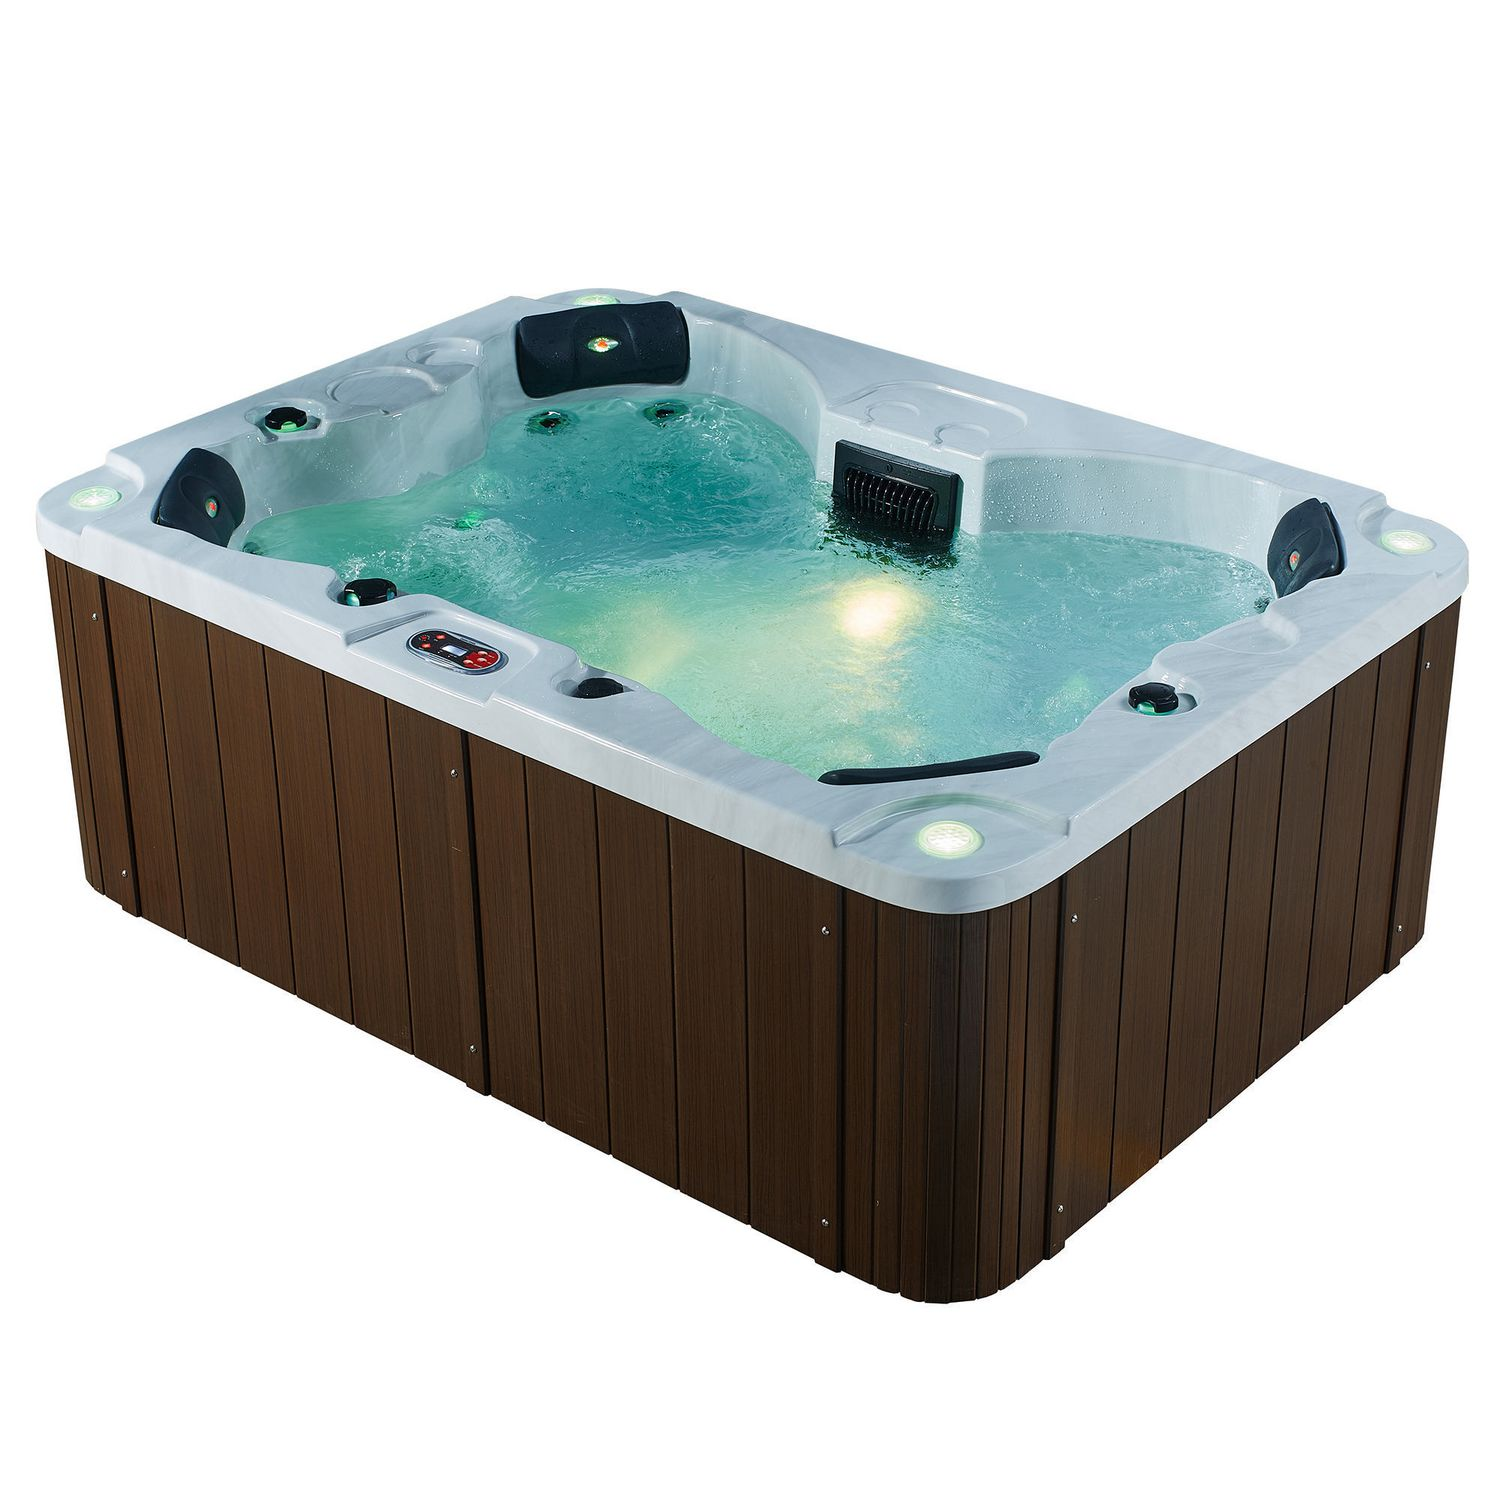 how massage amazon intex do much dp purespa tubs set garden hot ca bubble portable lawn patio tub cost spa